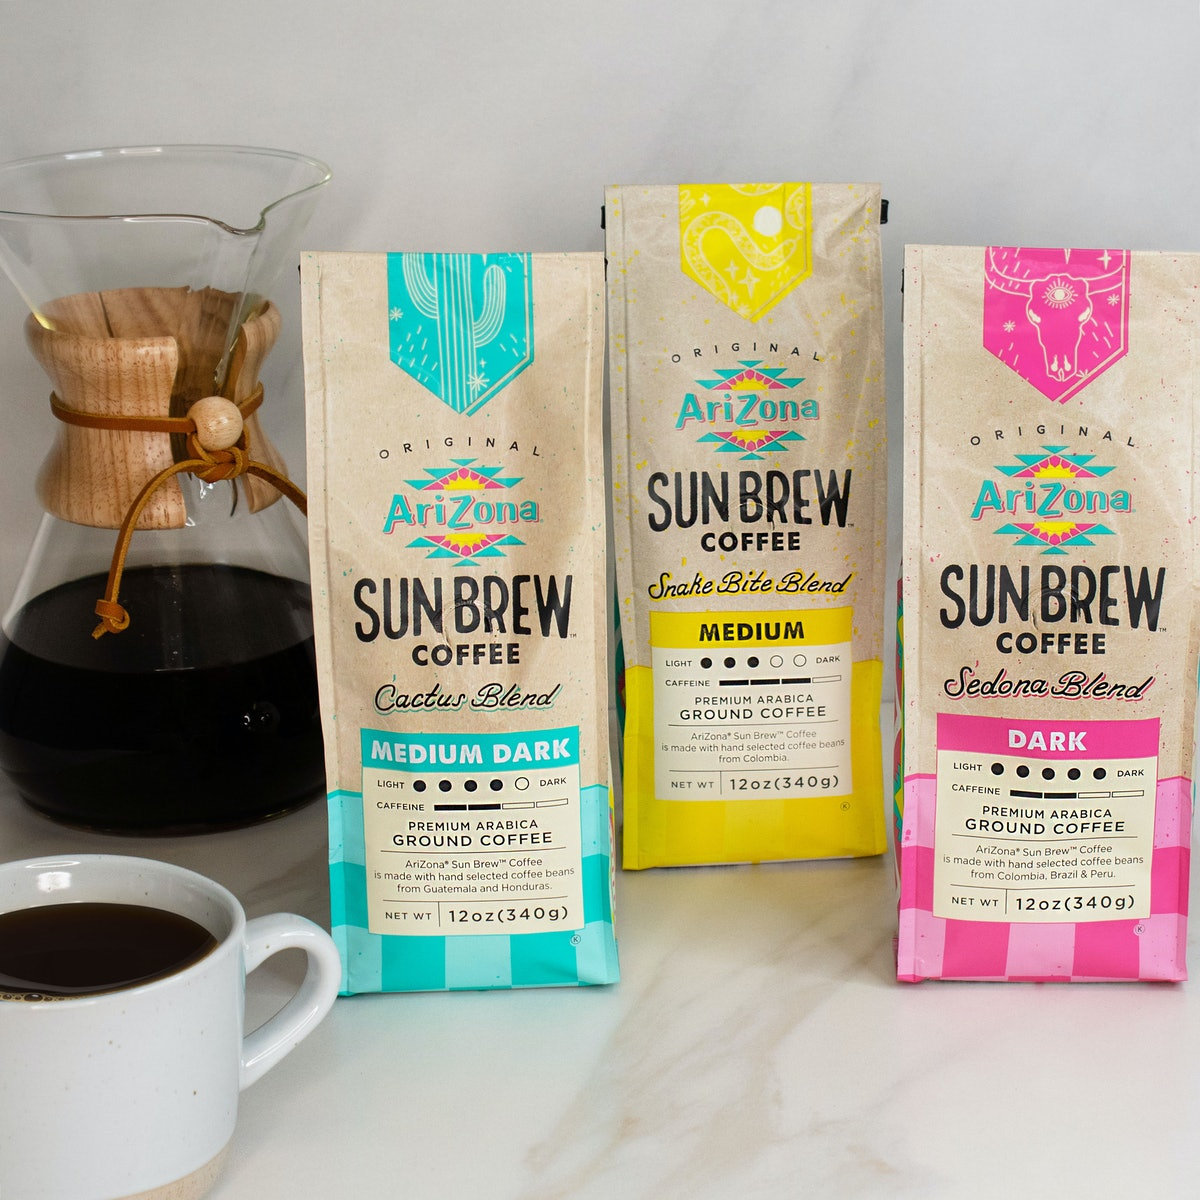 Here's what to know about AriZona Beverages' Sun Brew packaged coffee.